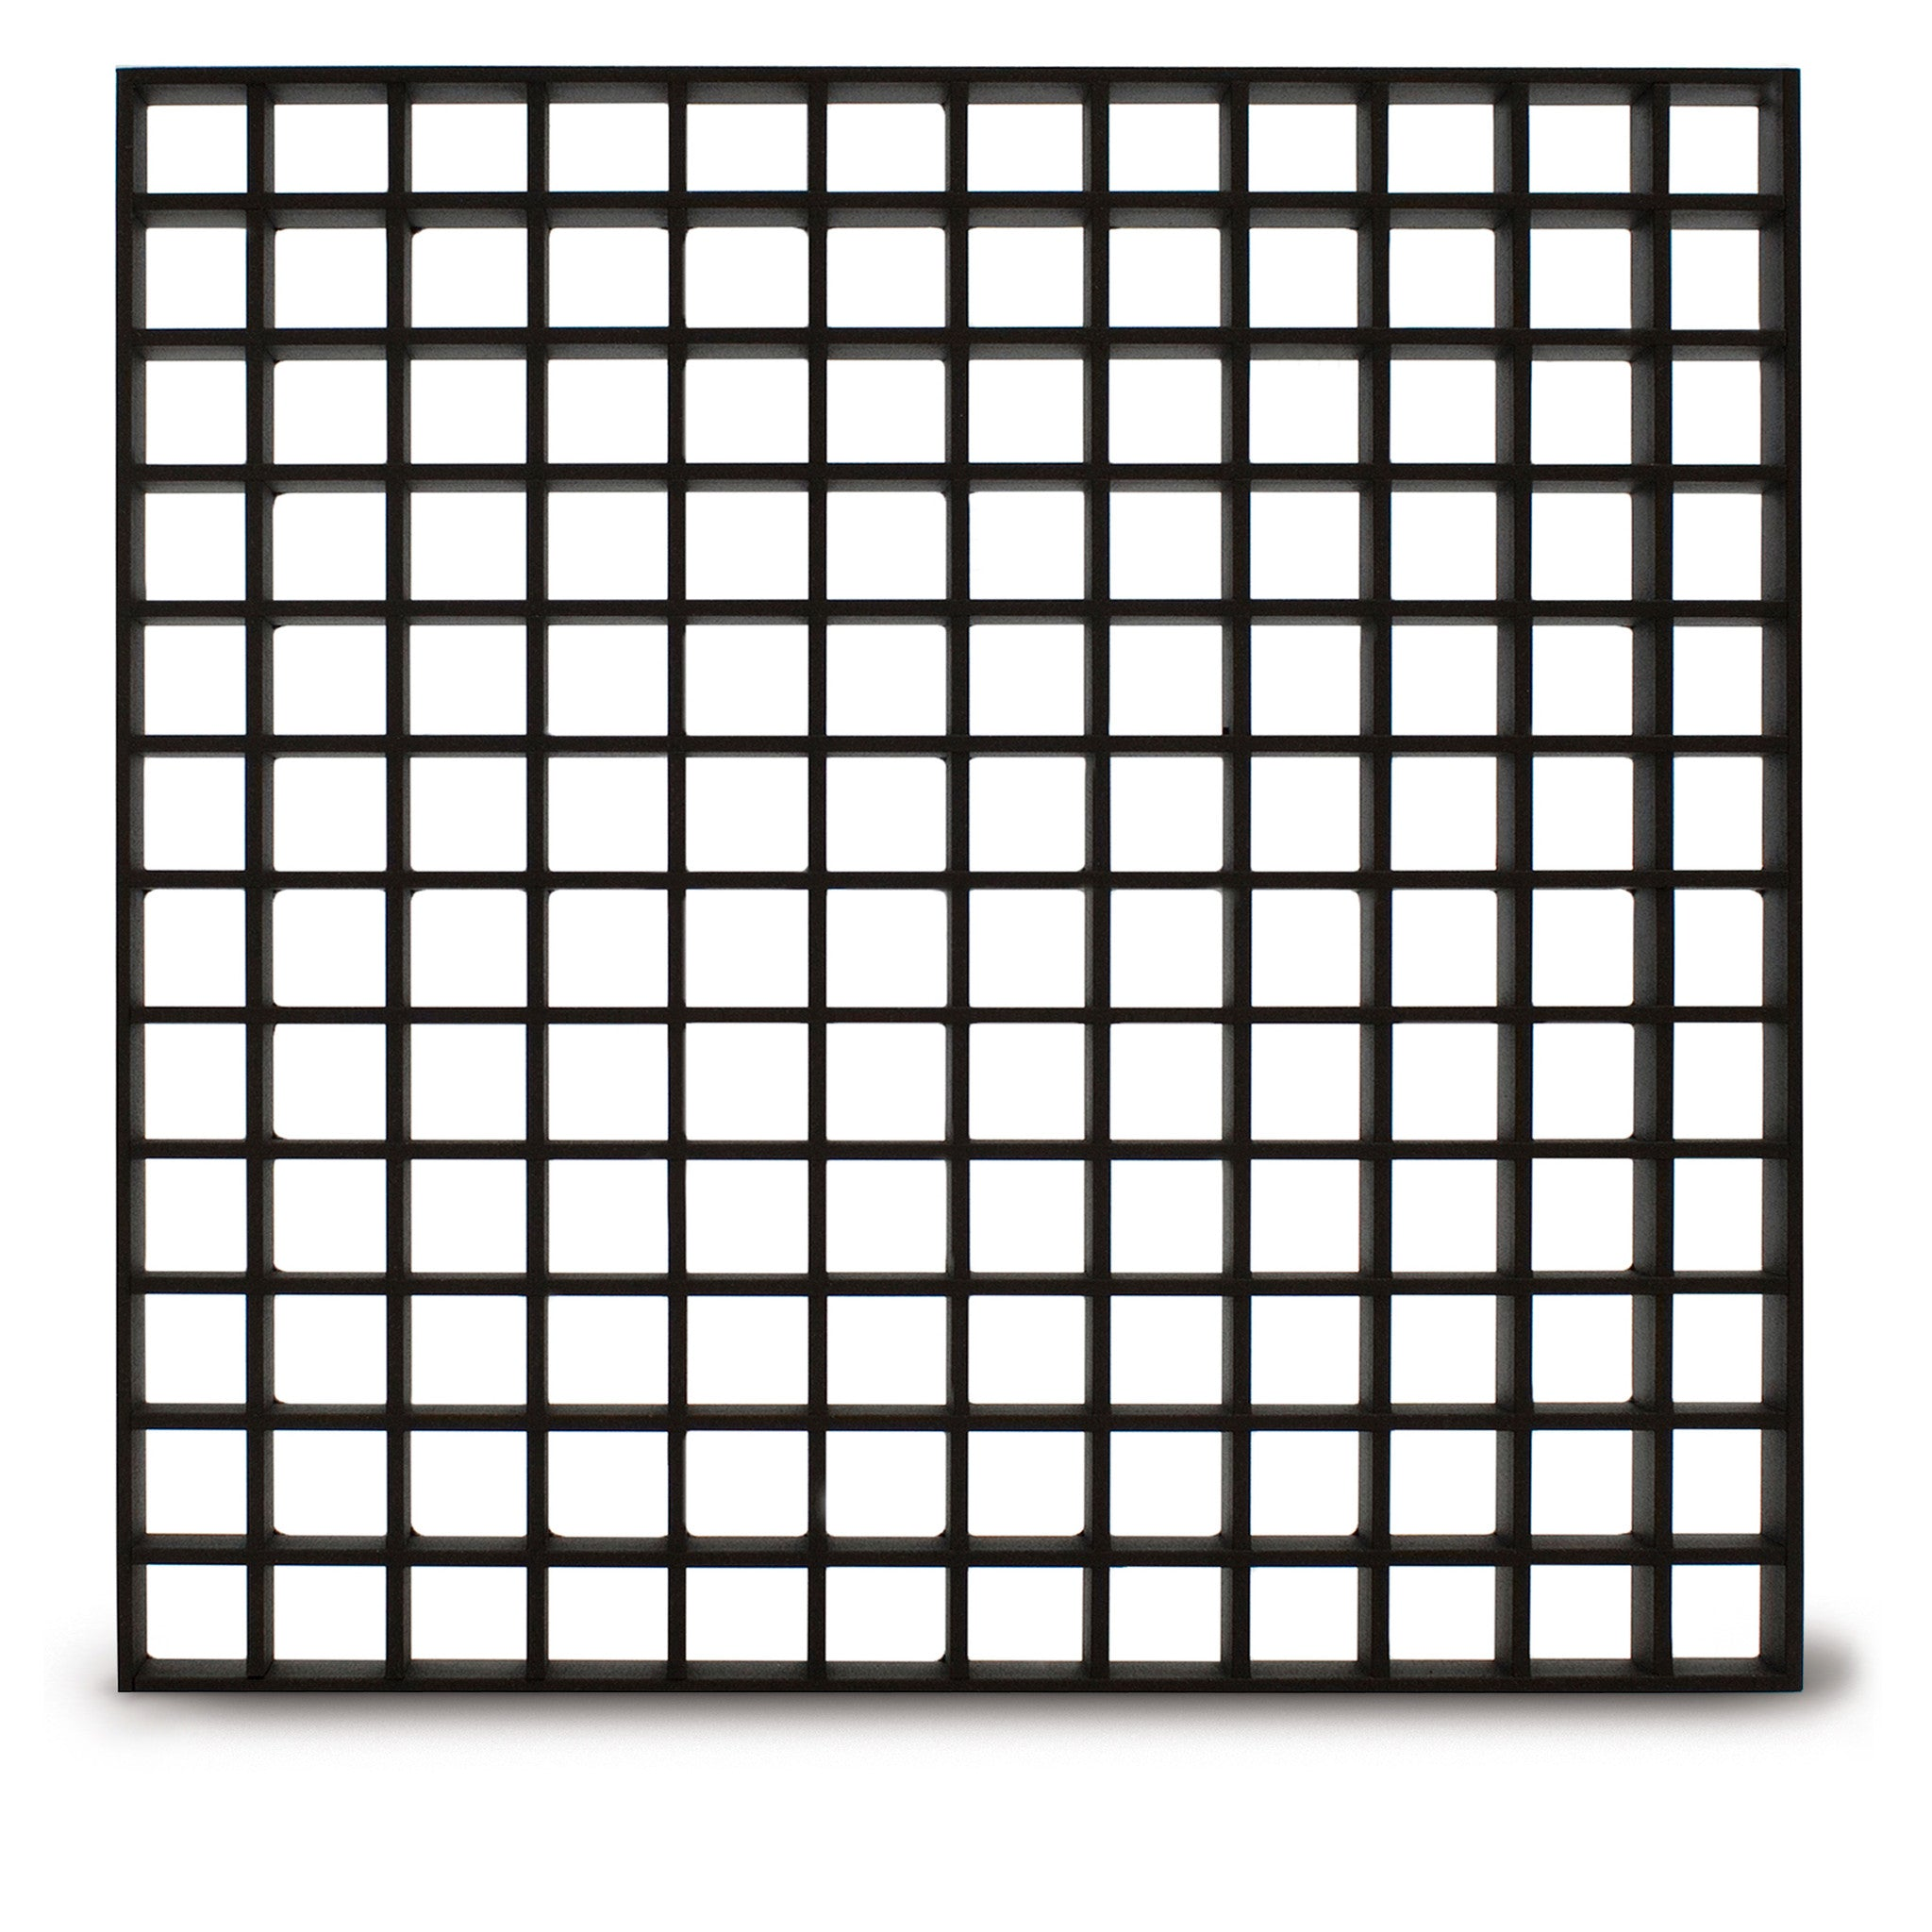 Metal Egg Crate Grille : Egg crate grilles architectural grille